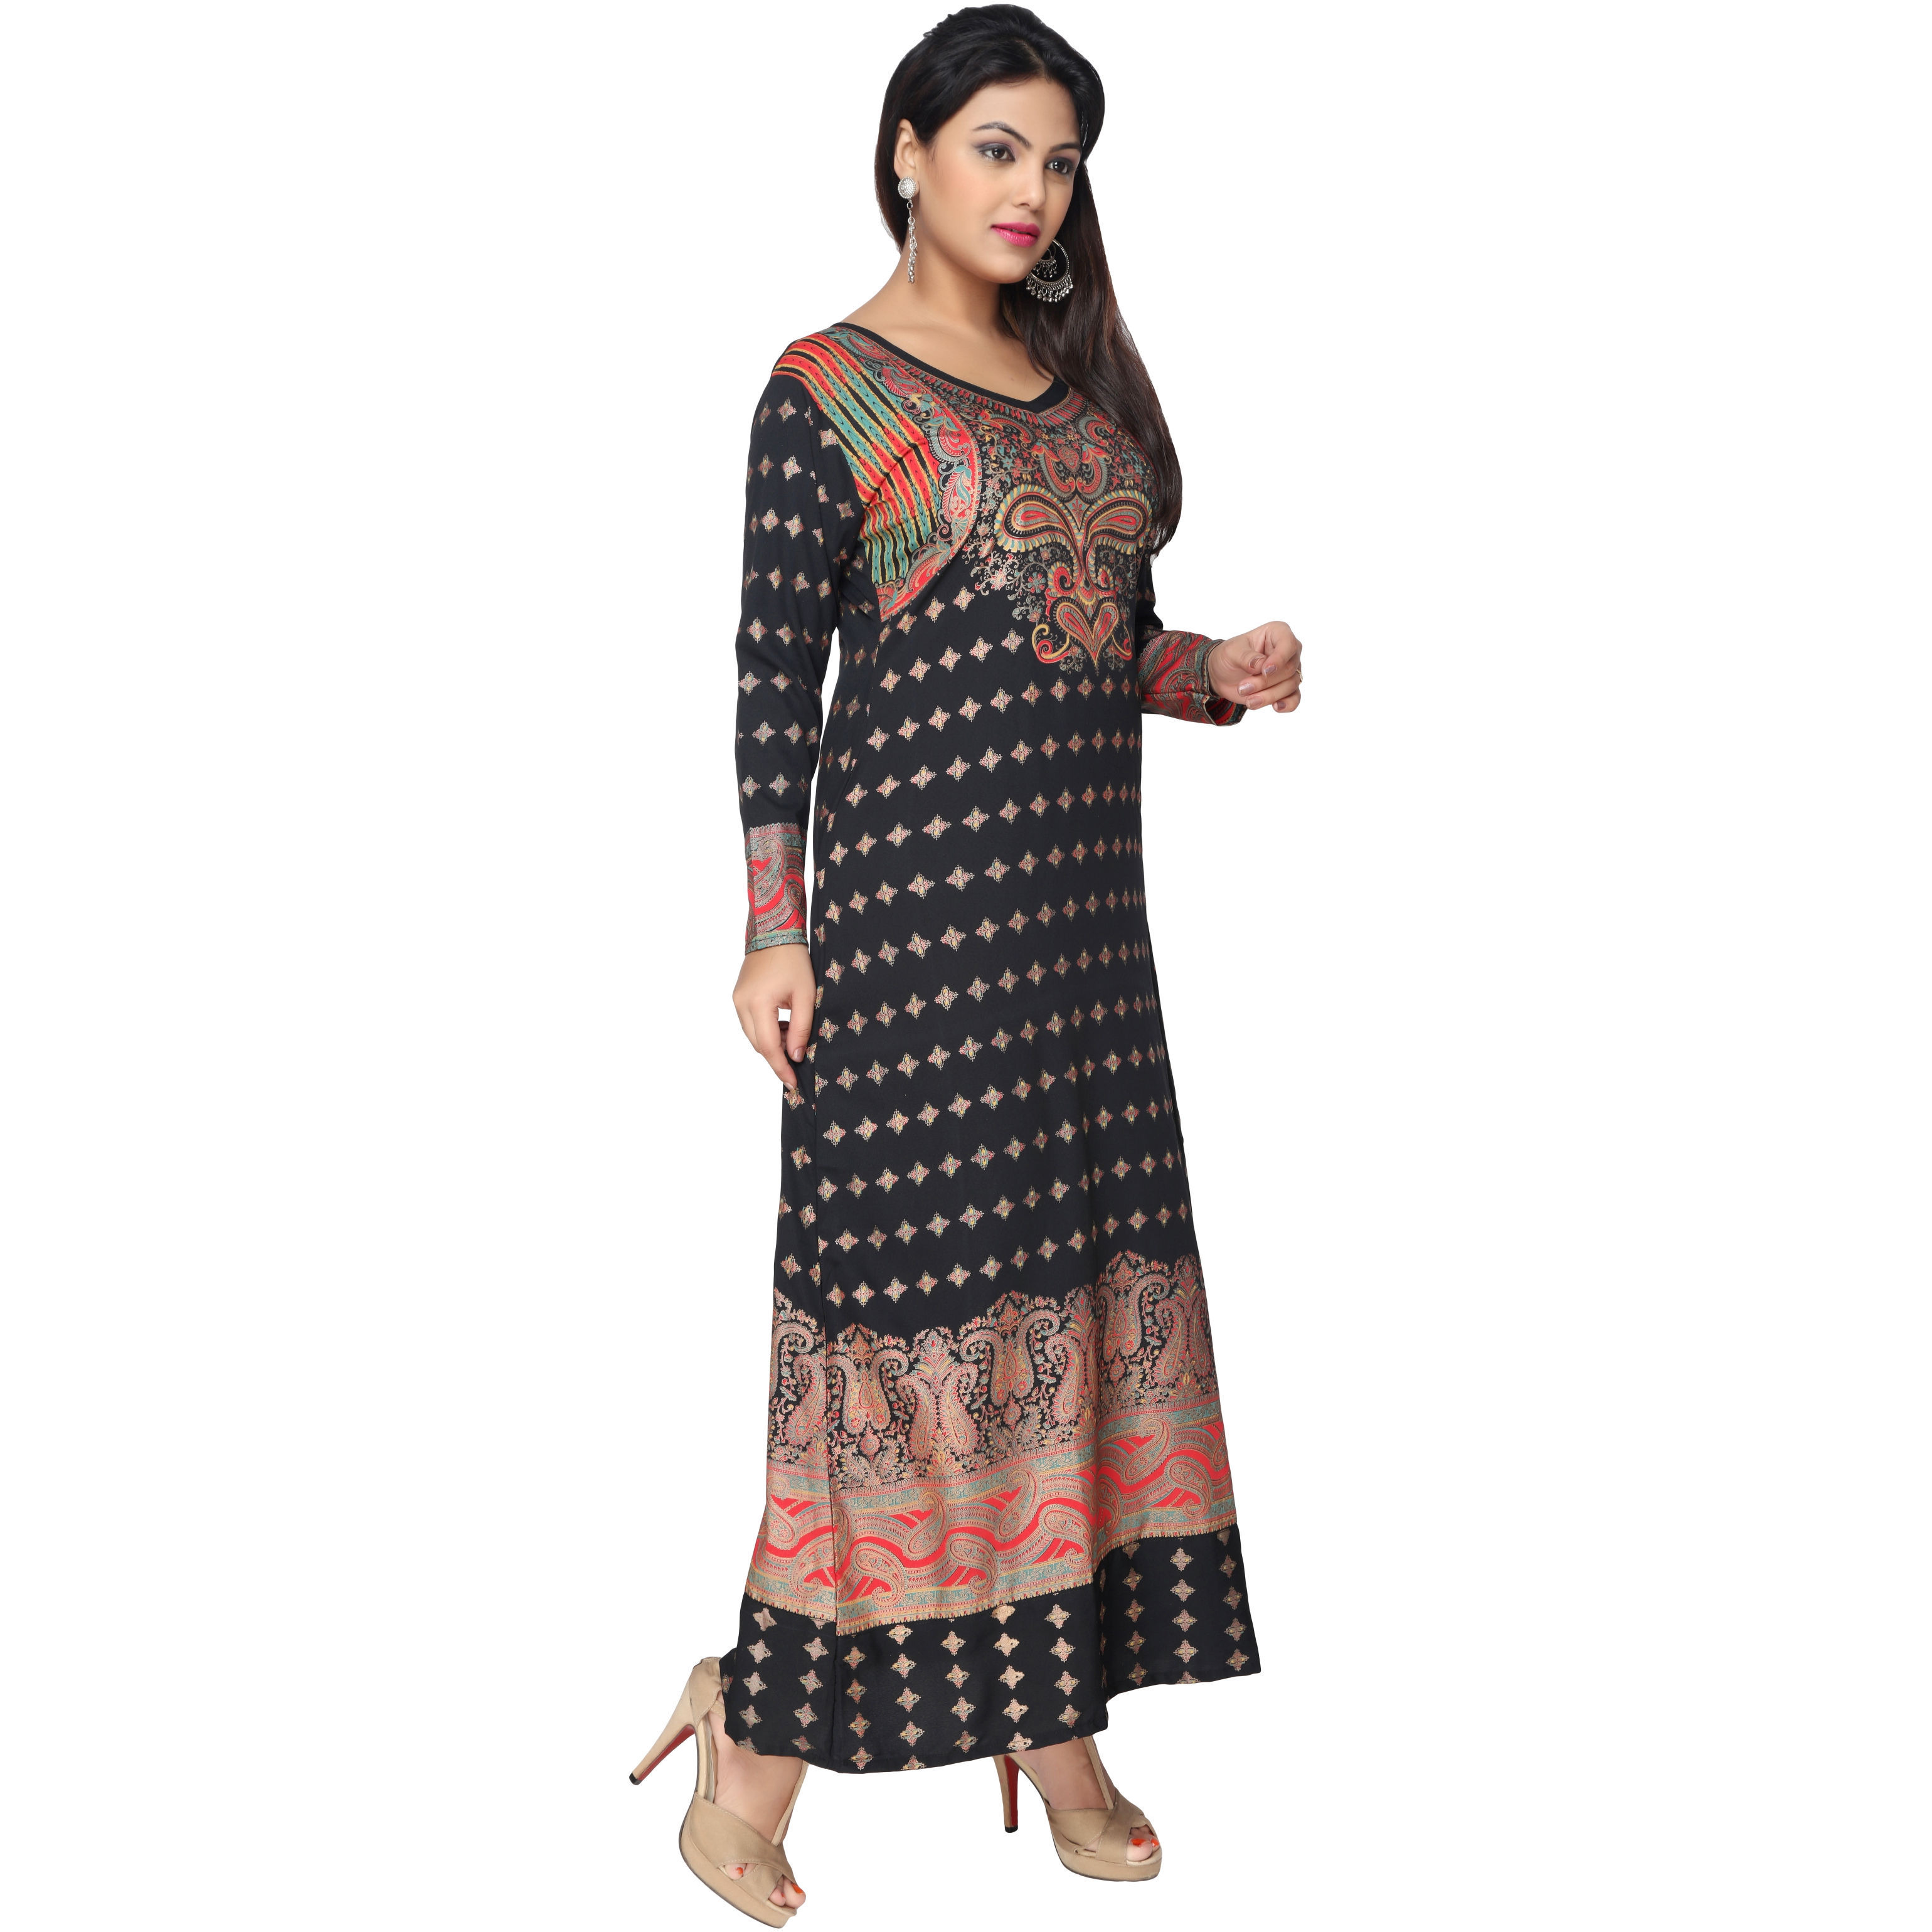 TrendyFashionMall Gold Print Kaftans Maxi Dresses with design in Front and Back (Color:TFMKFT01021-BLACK, Size:38 - SMALL)